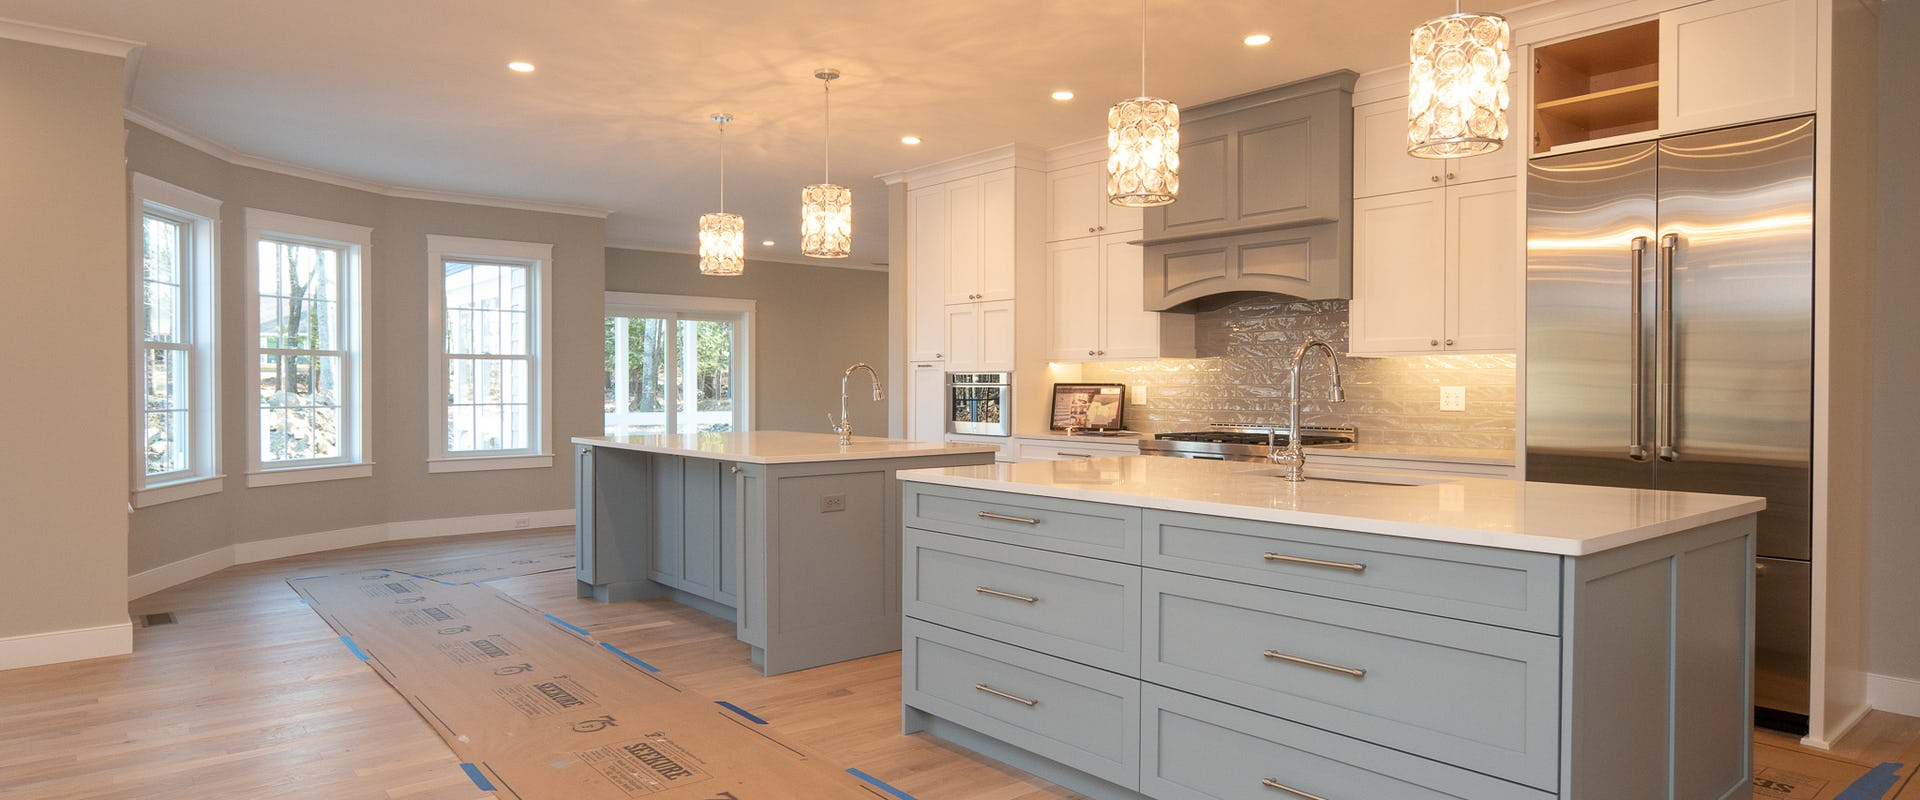 stoneleigh-preserve-kitchen.jpg